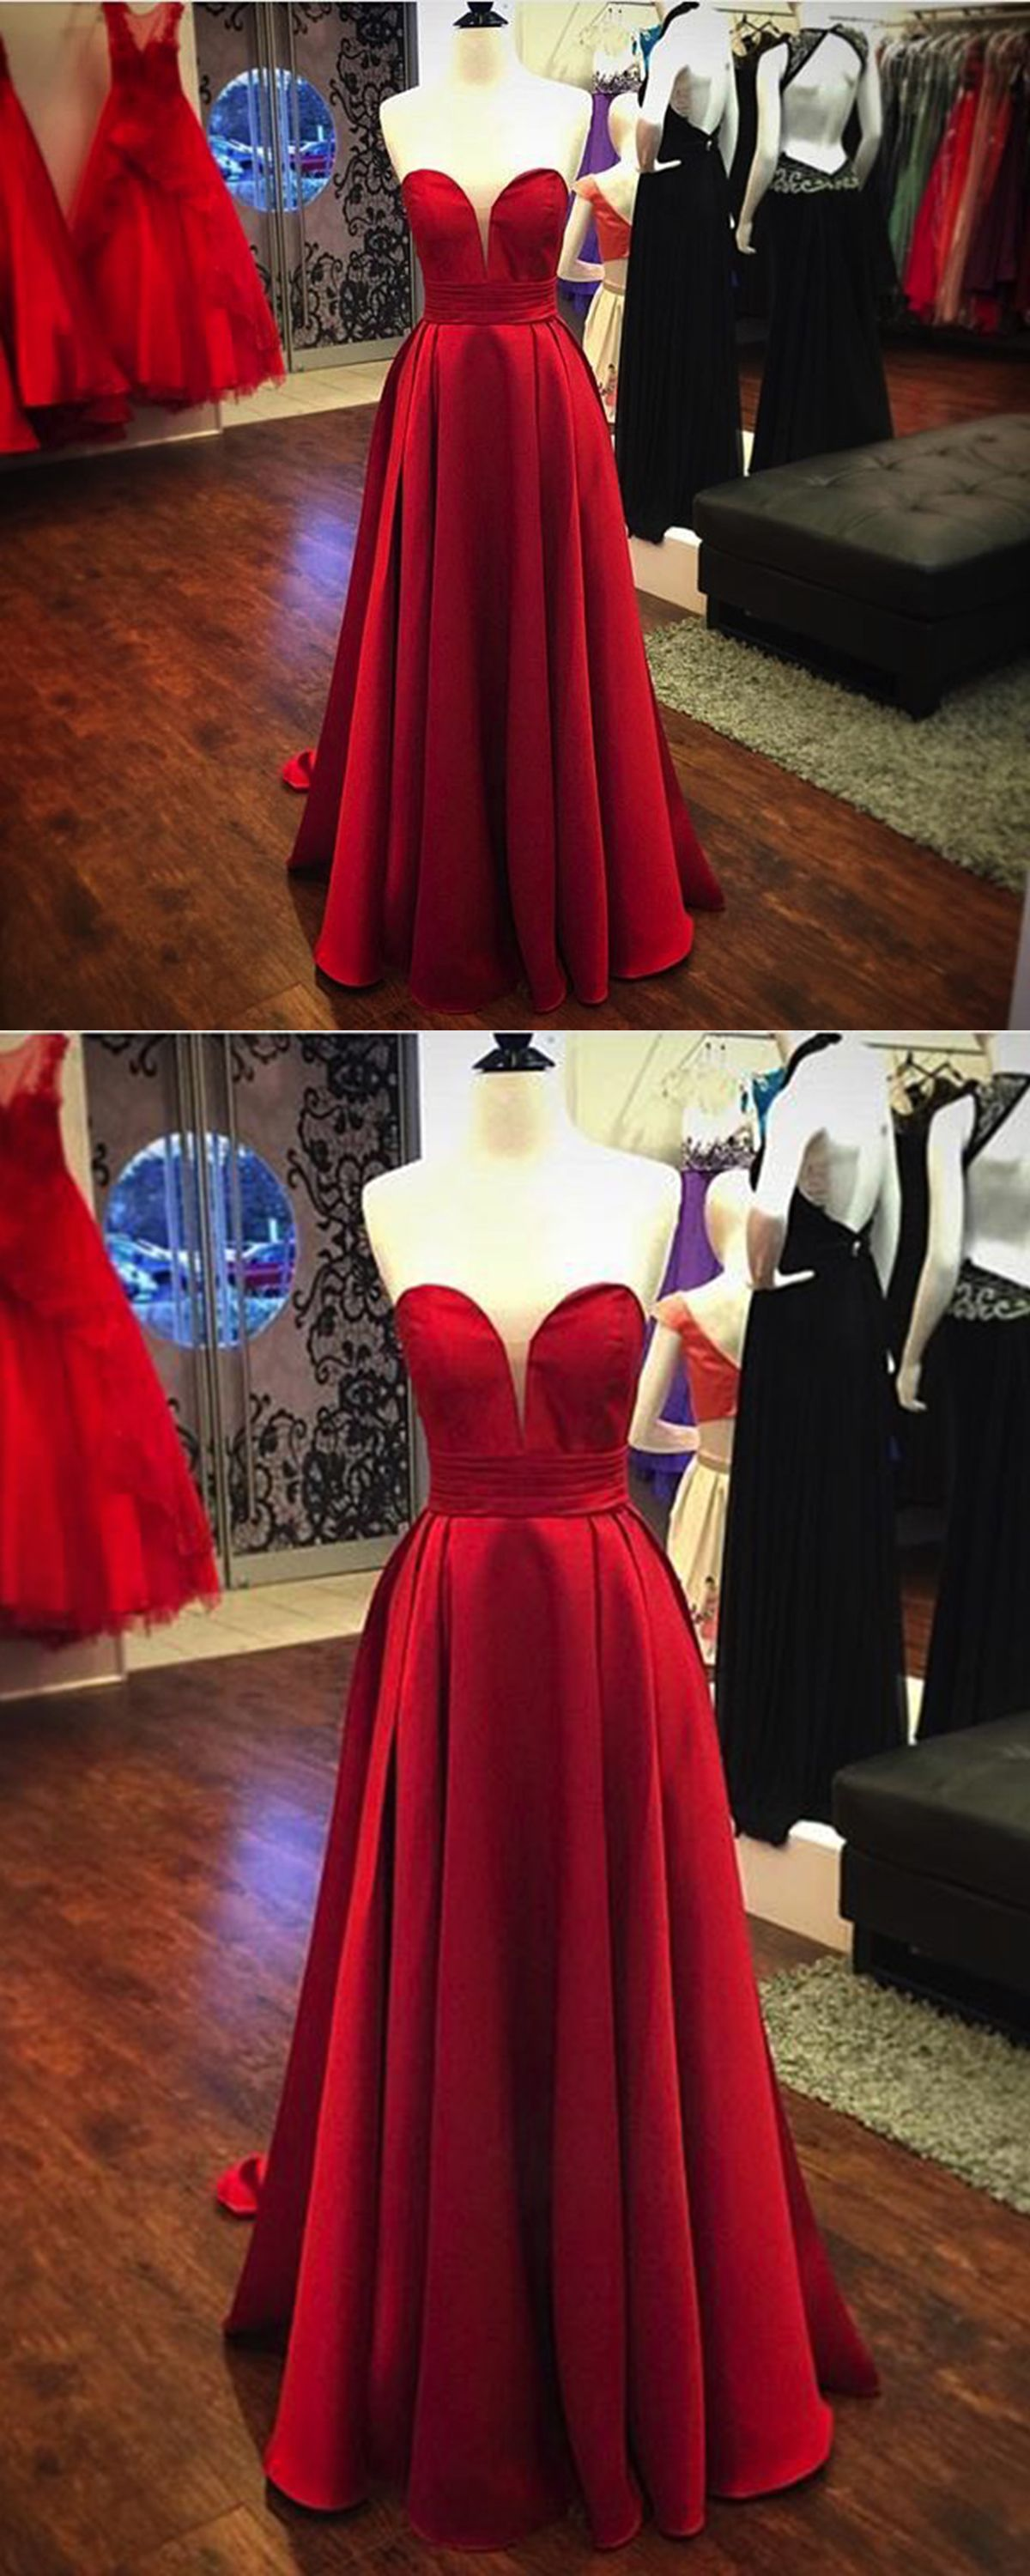 Strapless red satin customize long lace up bridesmaid dresses long